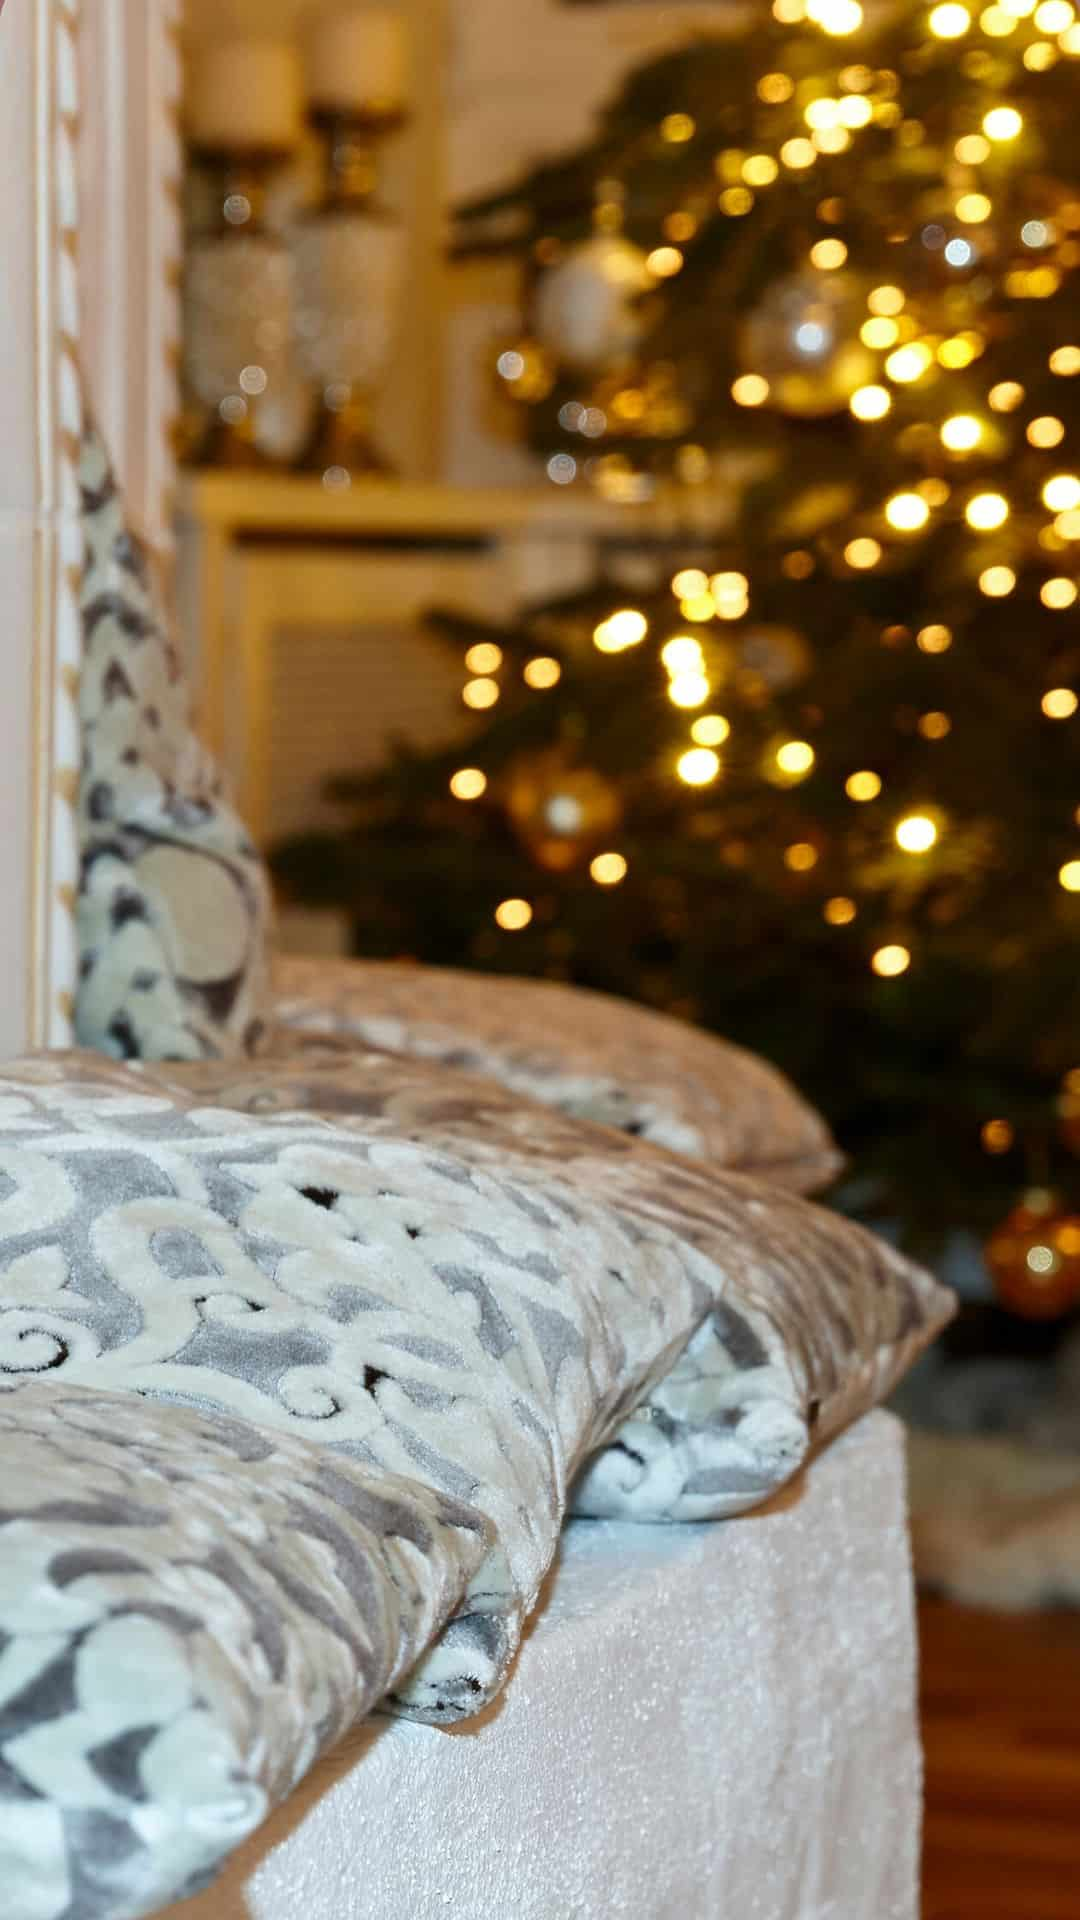 Christmas Wallpapers For iPhone Cozy Pillows & Christmas Tree